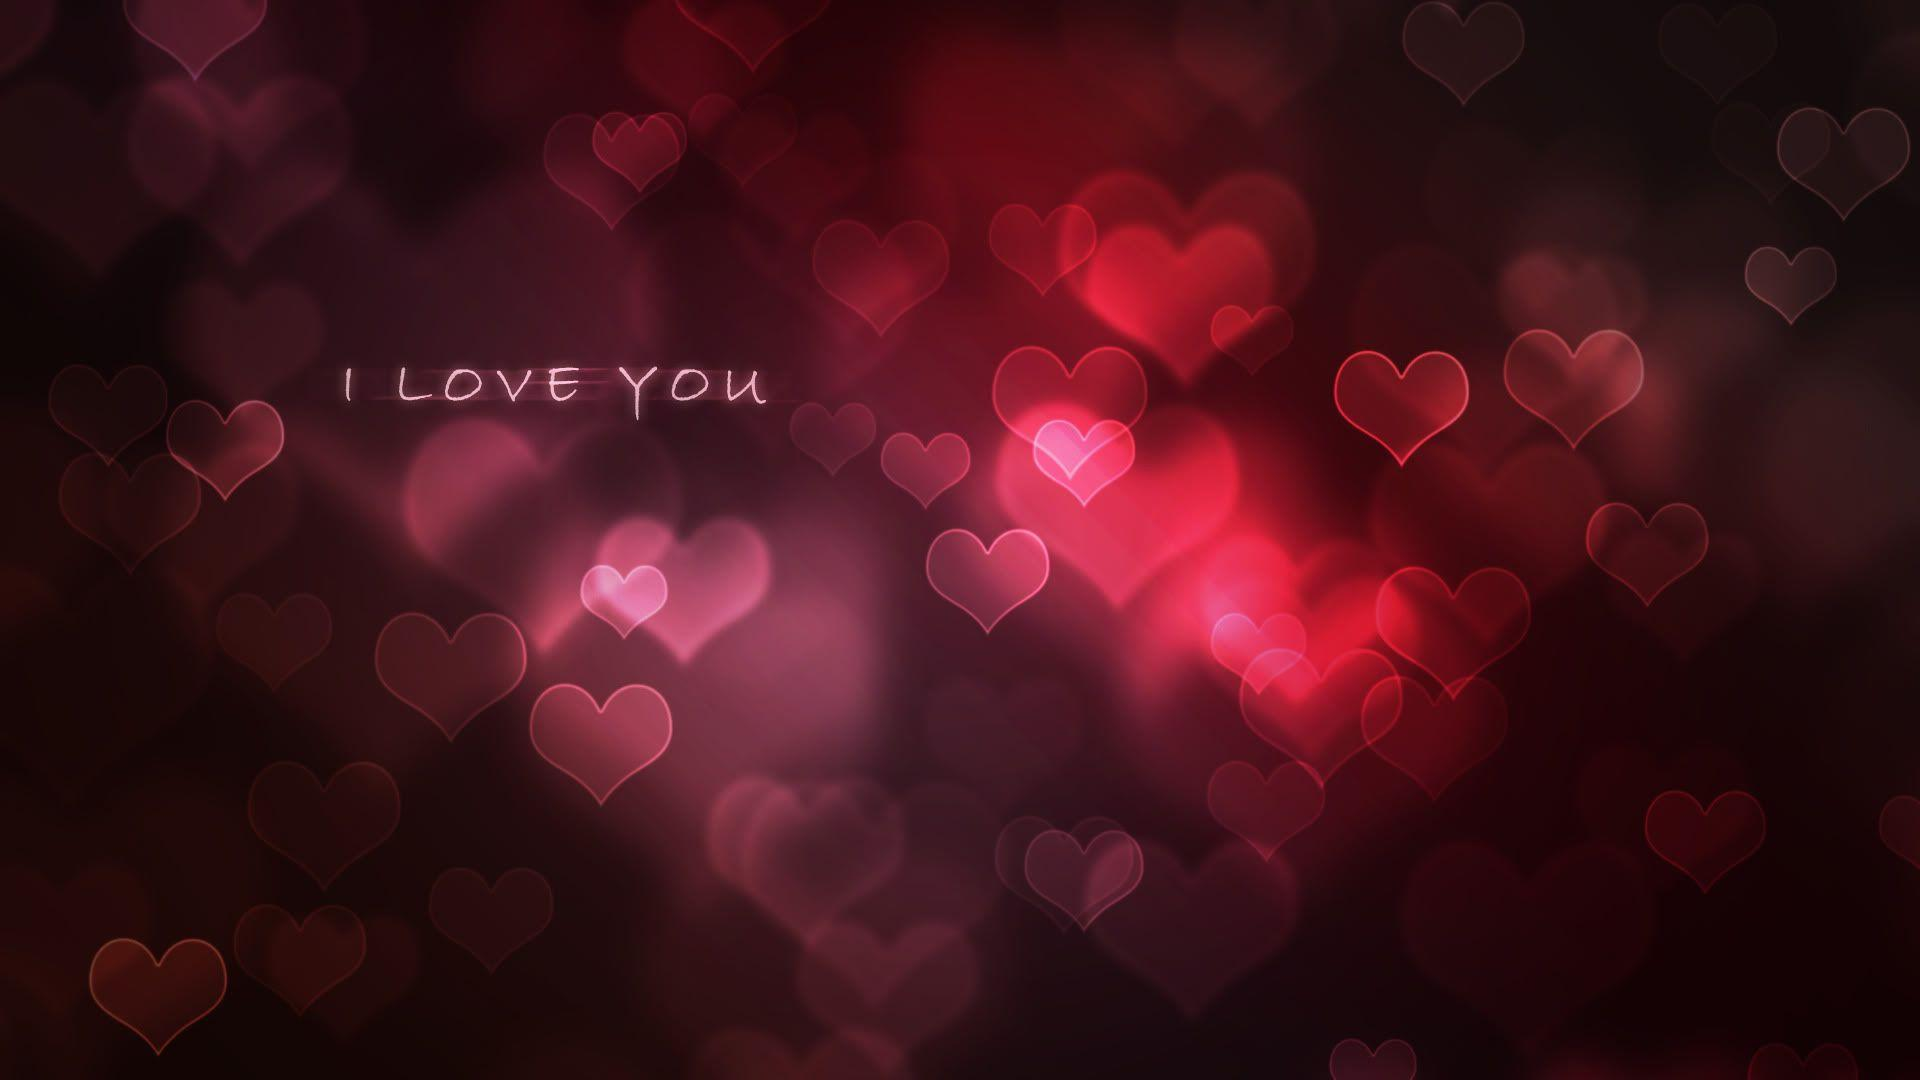 Love Backgrounds Image - Wallpaper cave